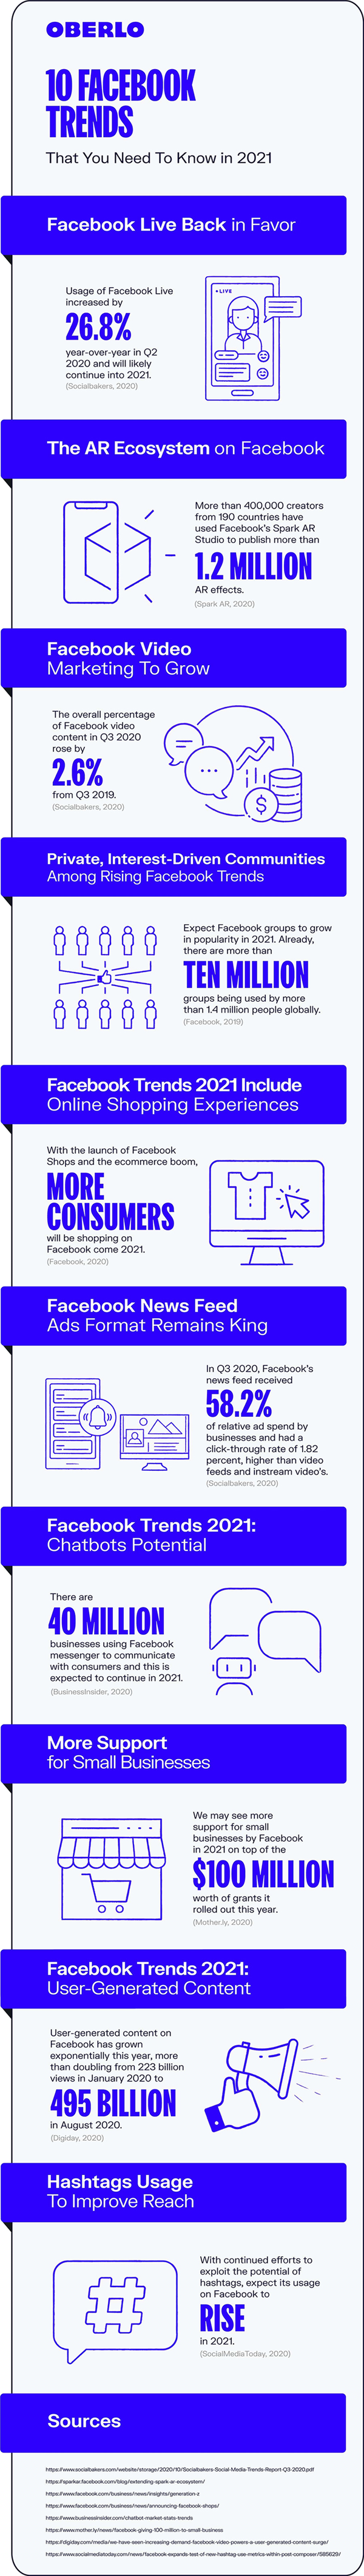 20-facebook-instagram-trends-you-need-to-know-in-2021-facebook.png (1.43 MB)